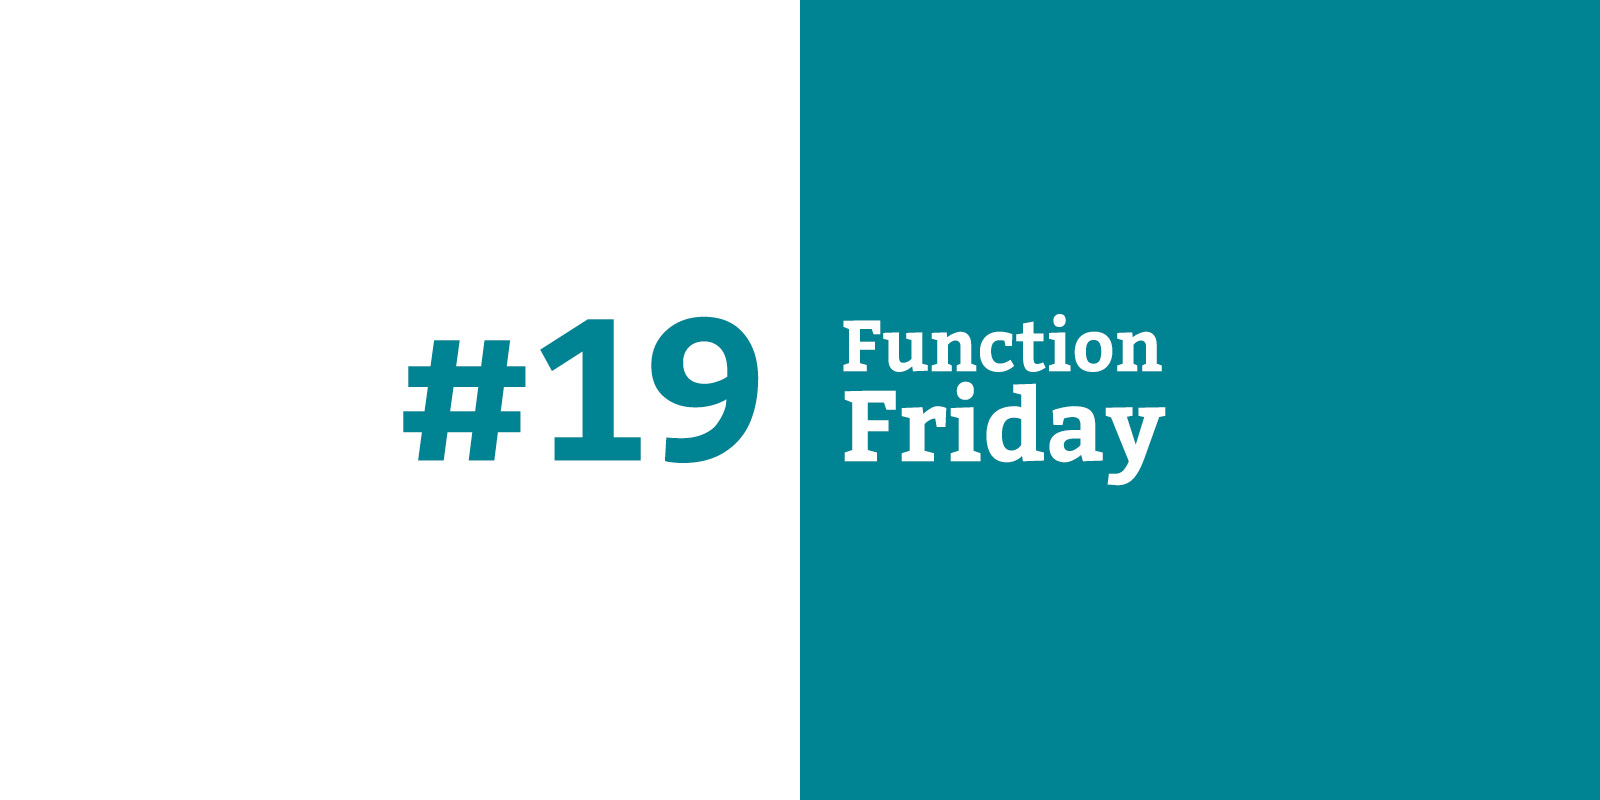 Function Friday #19